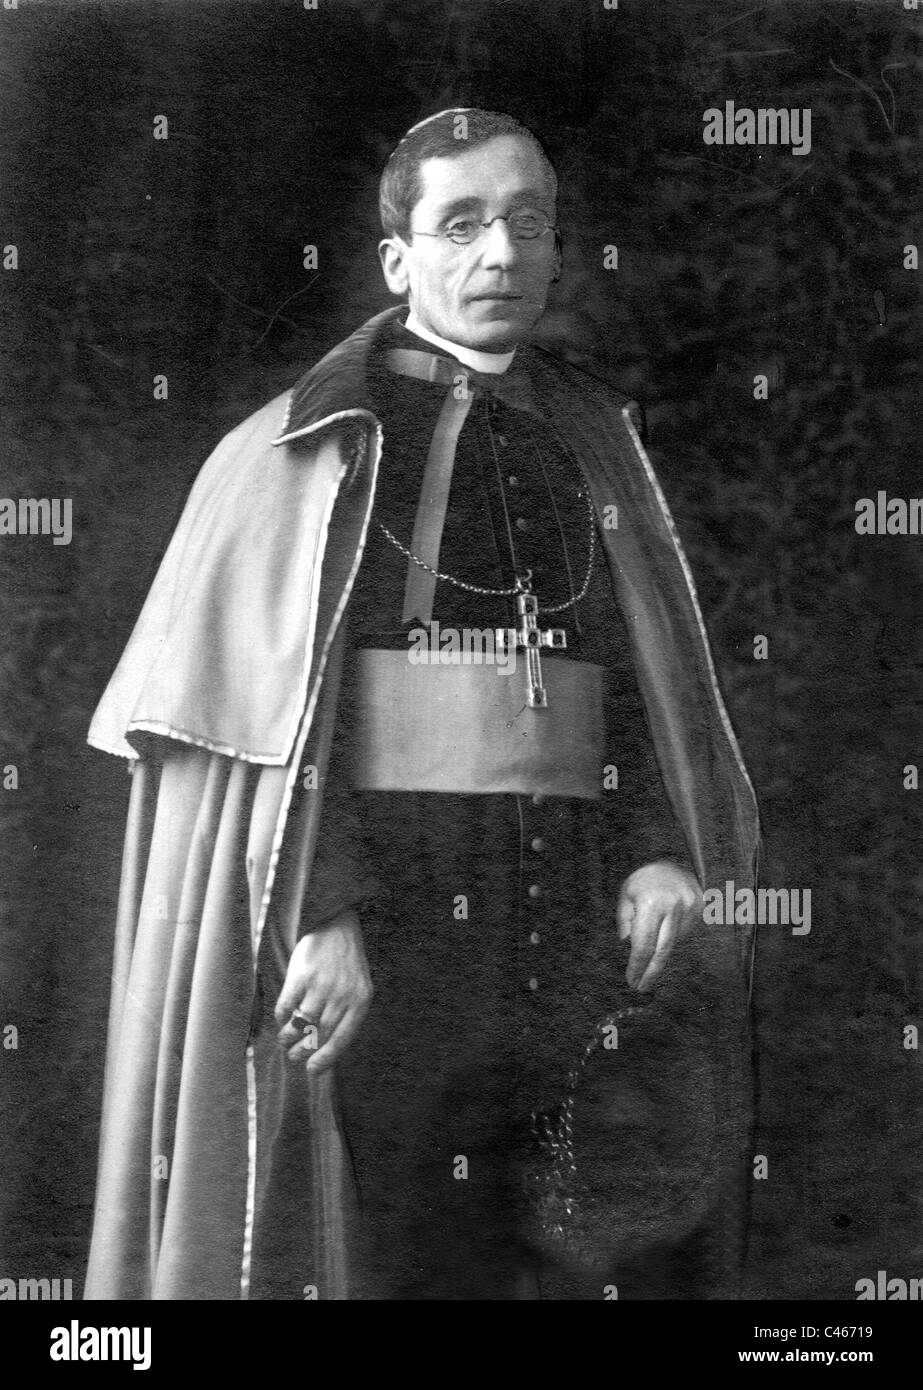 a biography of pope benedict xv Pope benedict xv (latin: benedictus pp xv), (italian: benedetto xv), (1854-11-21 - 1922-01-22), born giacomo della chiesa, reigned as pope of the roman catholic church from september 3, 1914 to january 22, 1922.